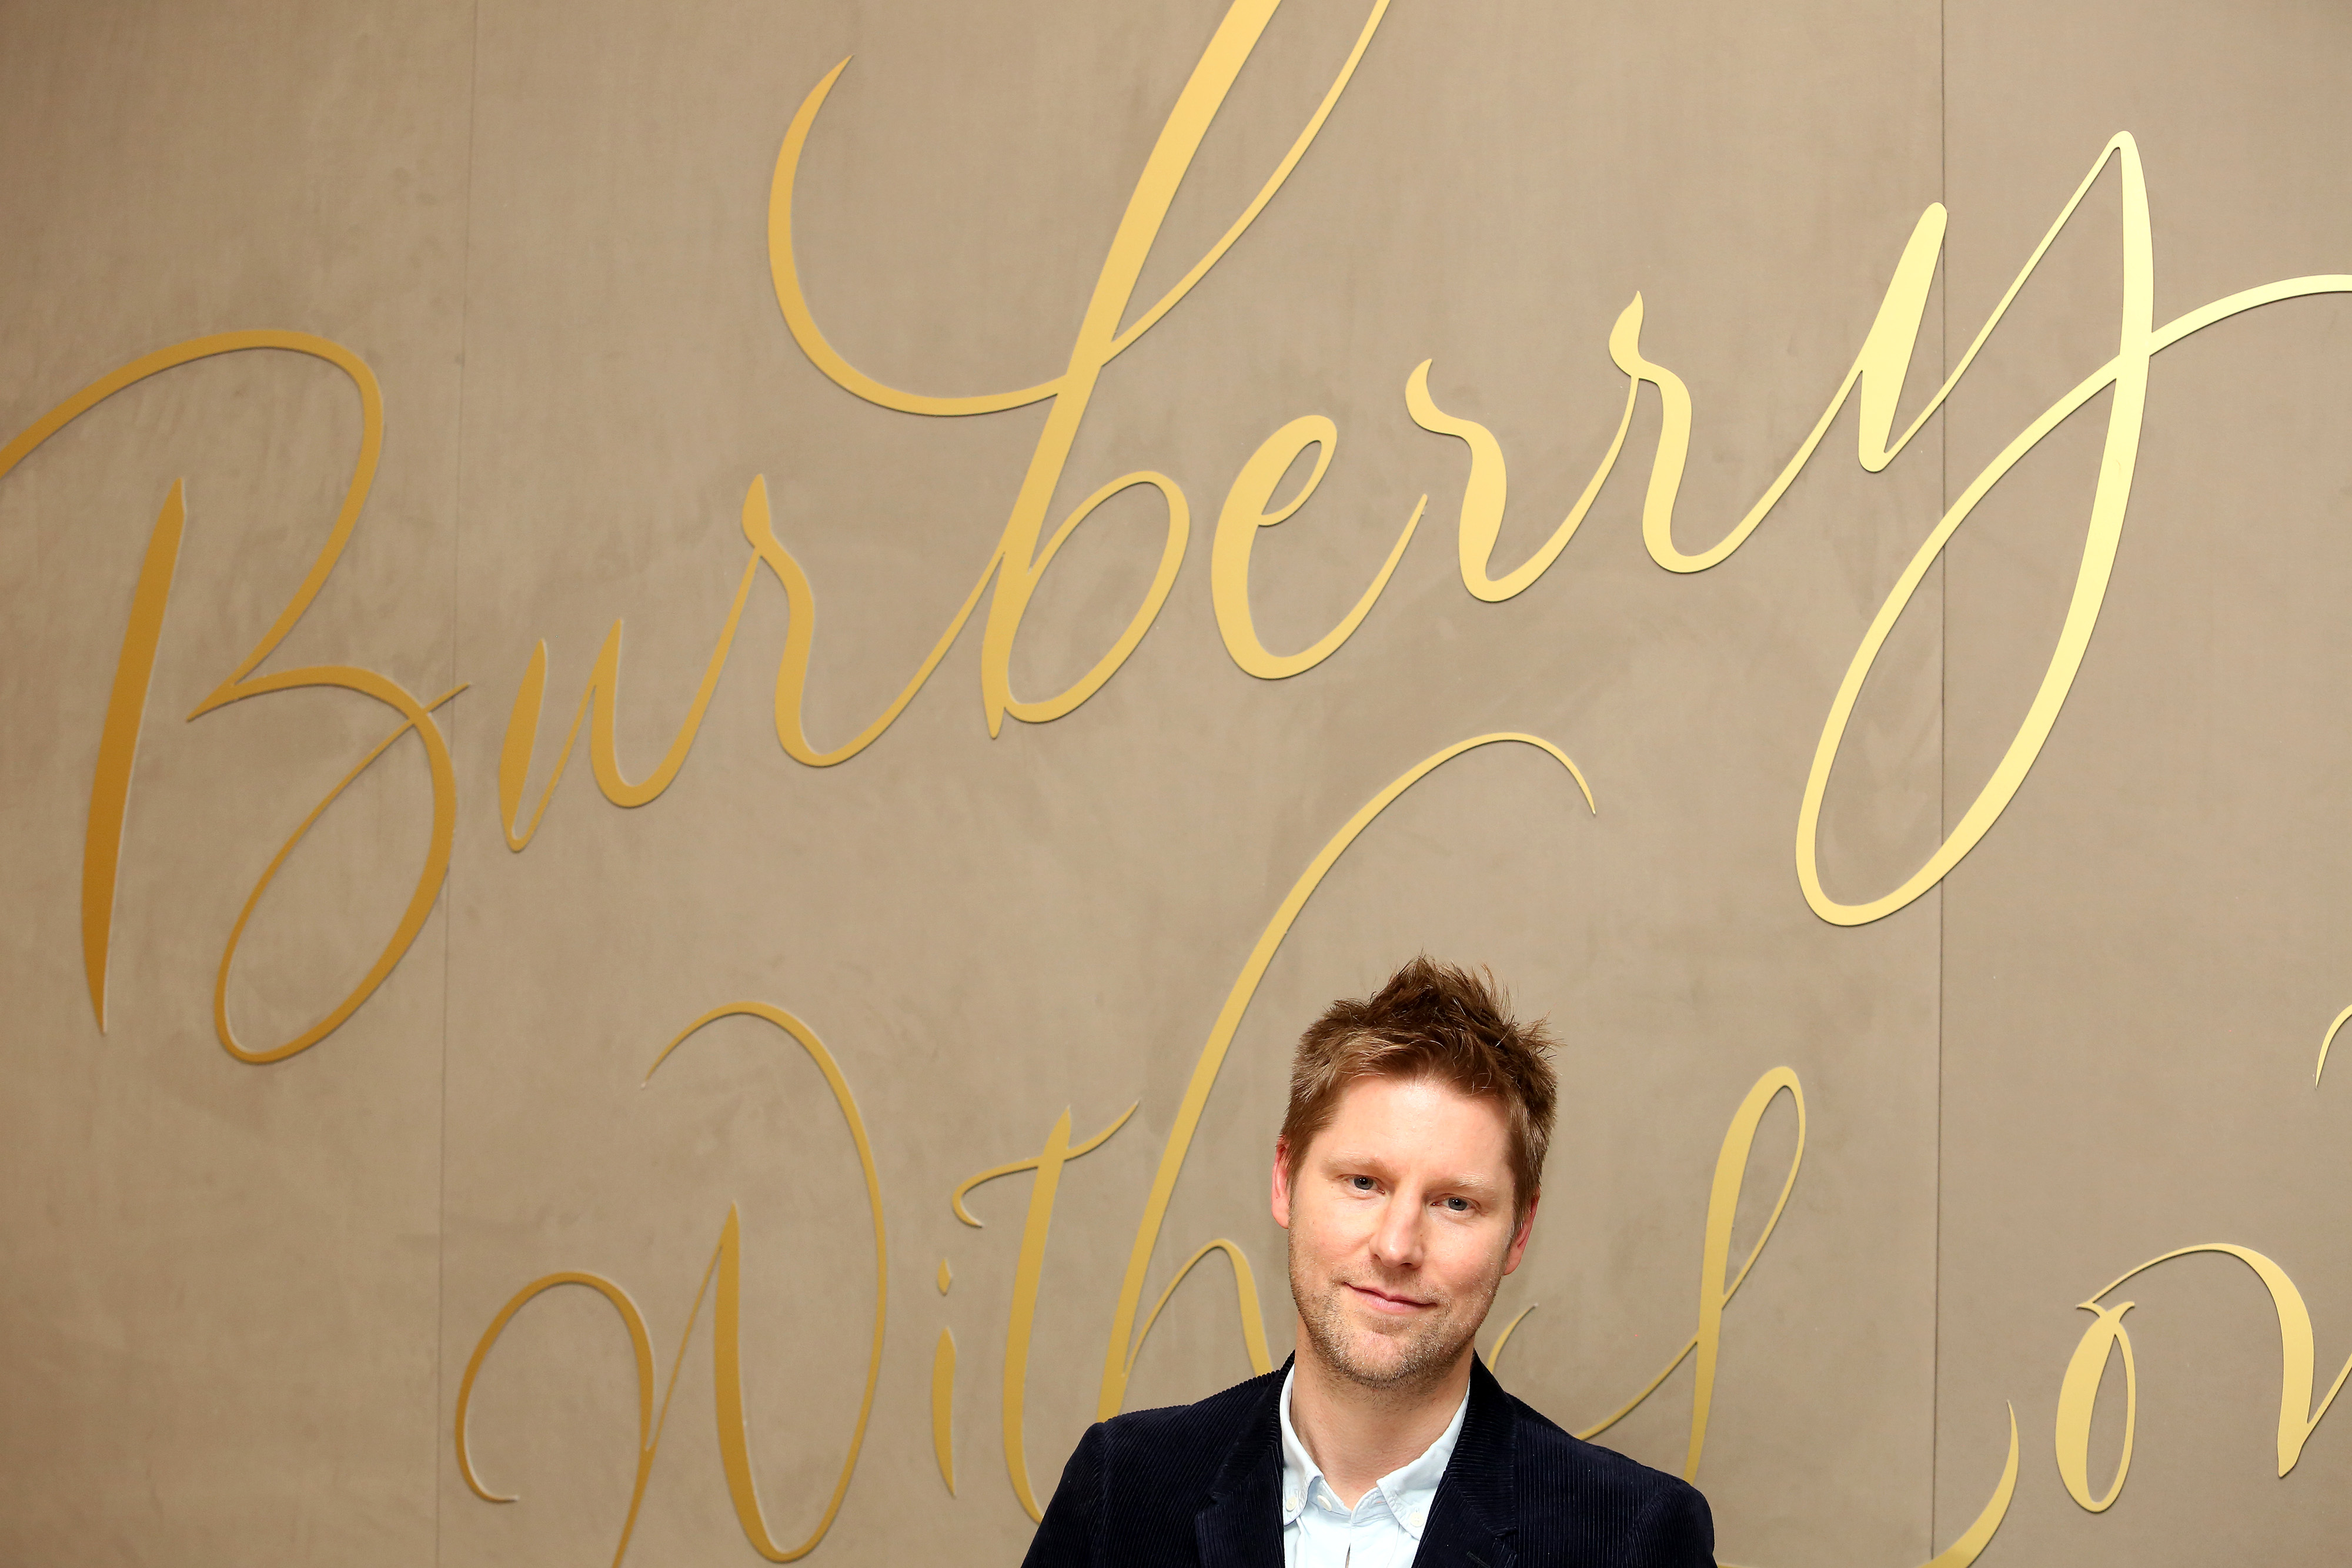 Burberry Group Plc Chief Executive Officer Christopher Bailey Launches New Festive Film